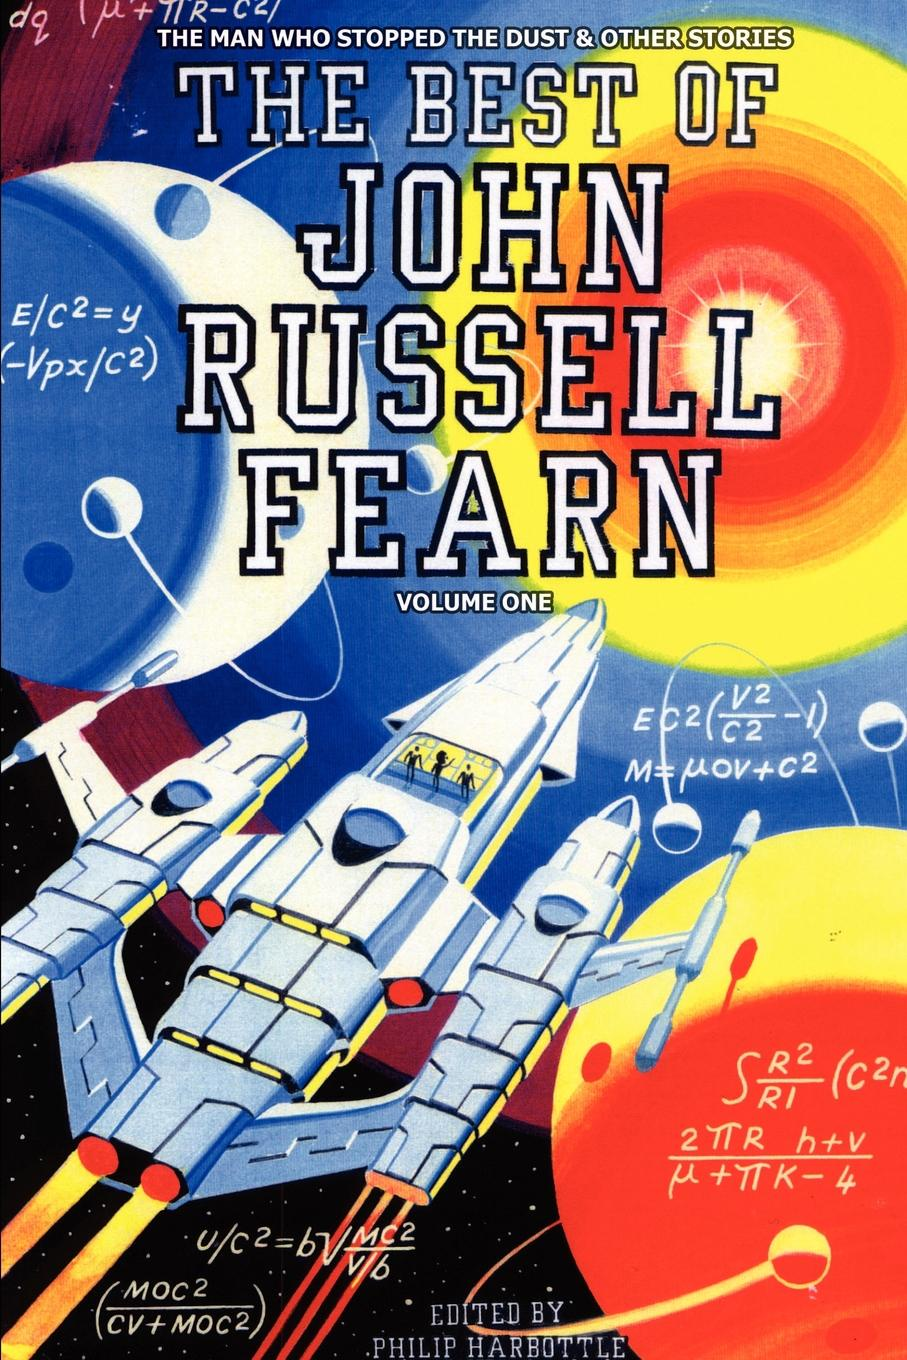 The Best of John Russell Fearn. Volume One: The Man Who Stopped the Dust and Other Stories john holt the candy man